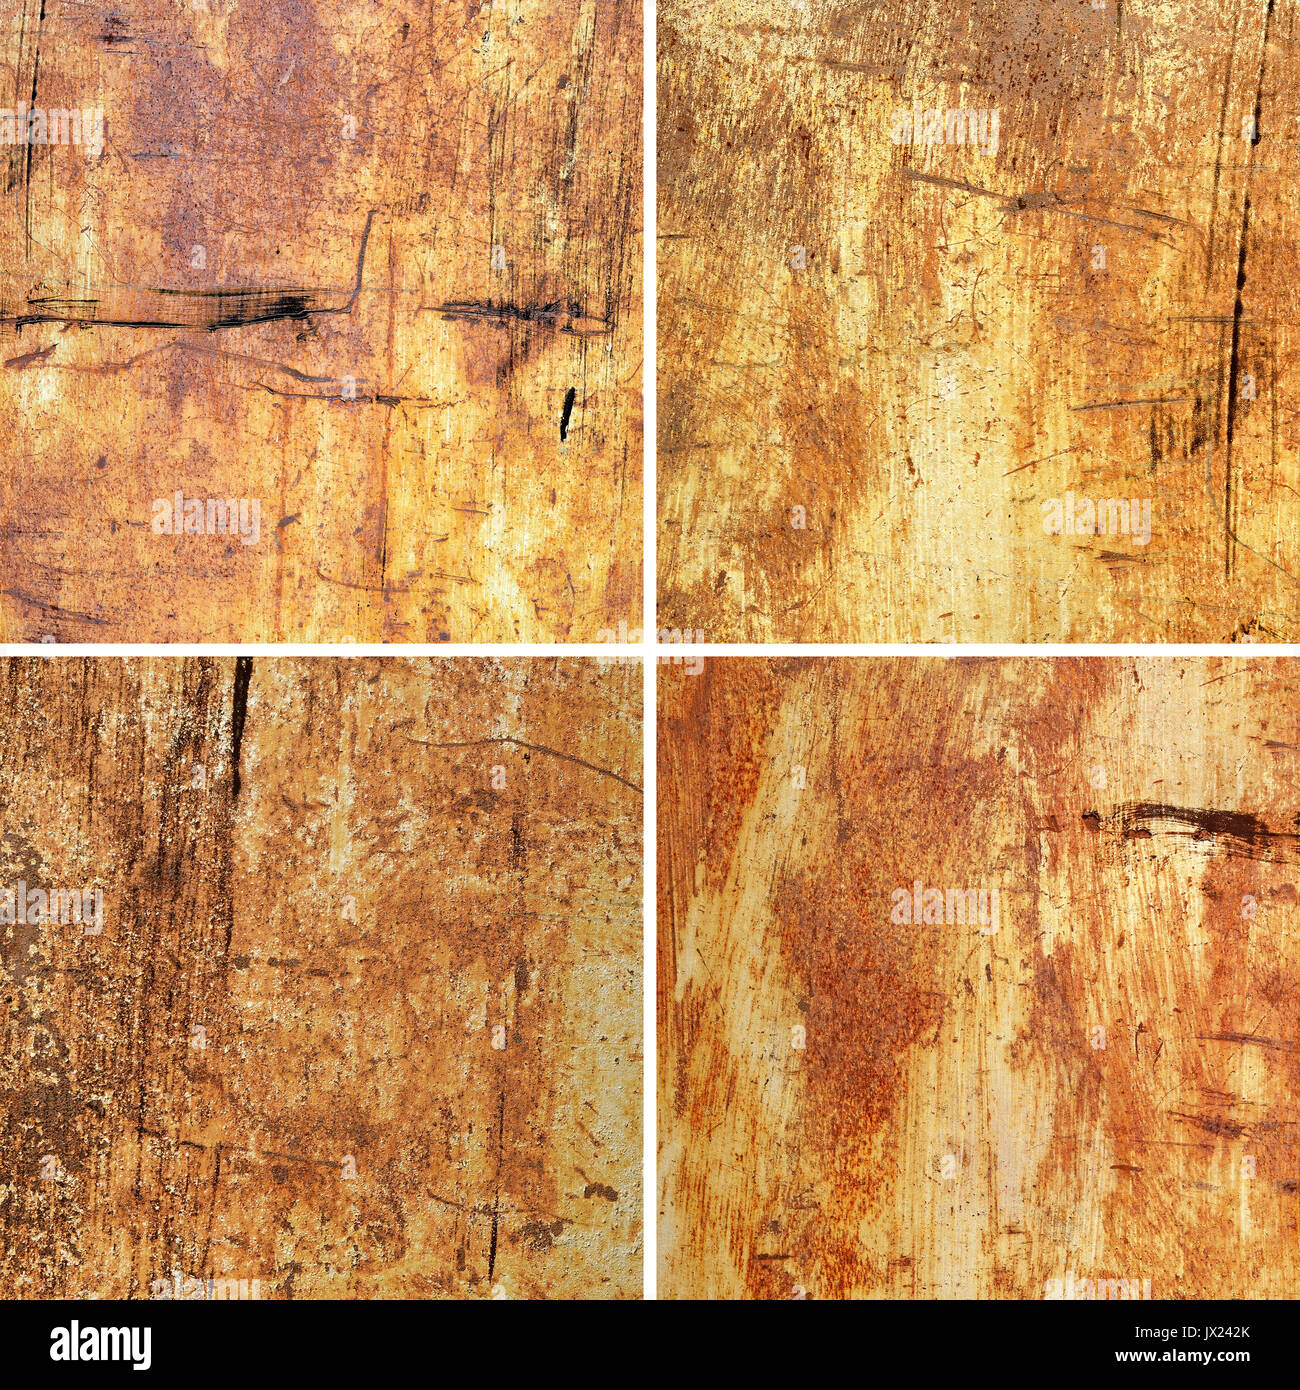 Set of Old Damaged and Weathered Metal or Steel Surfaces as Texture or Background - Stock Image